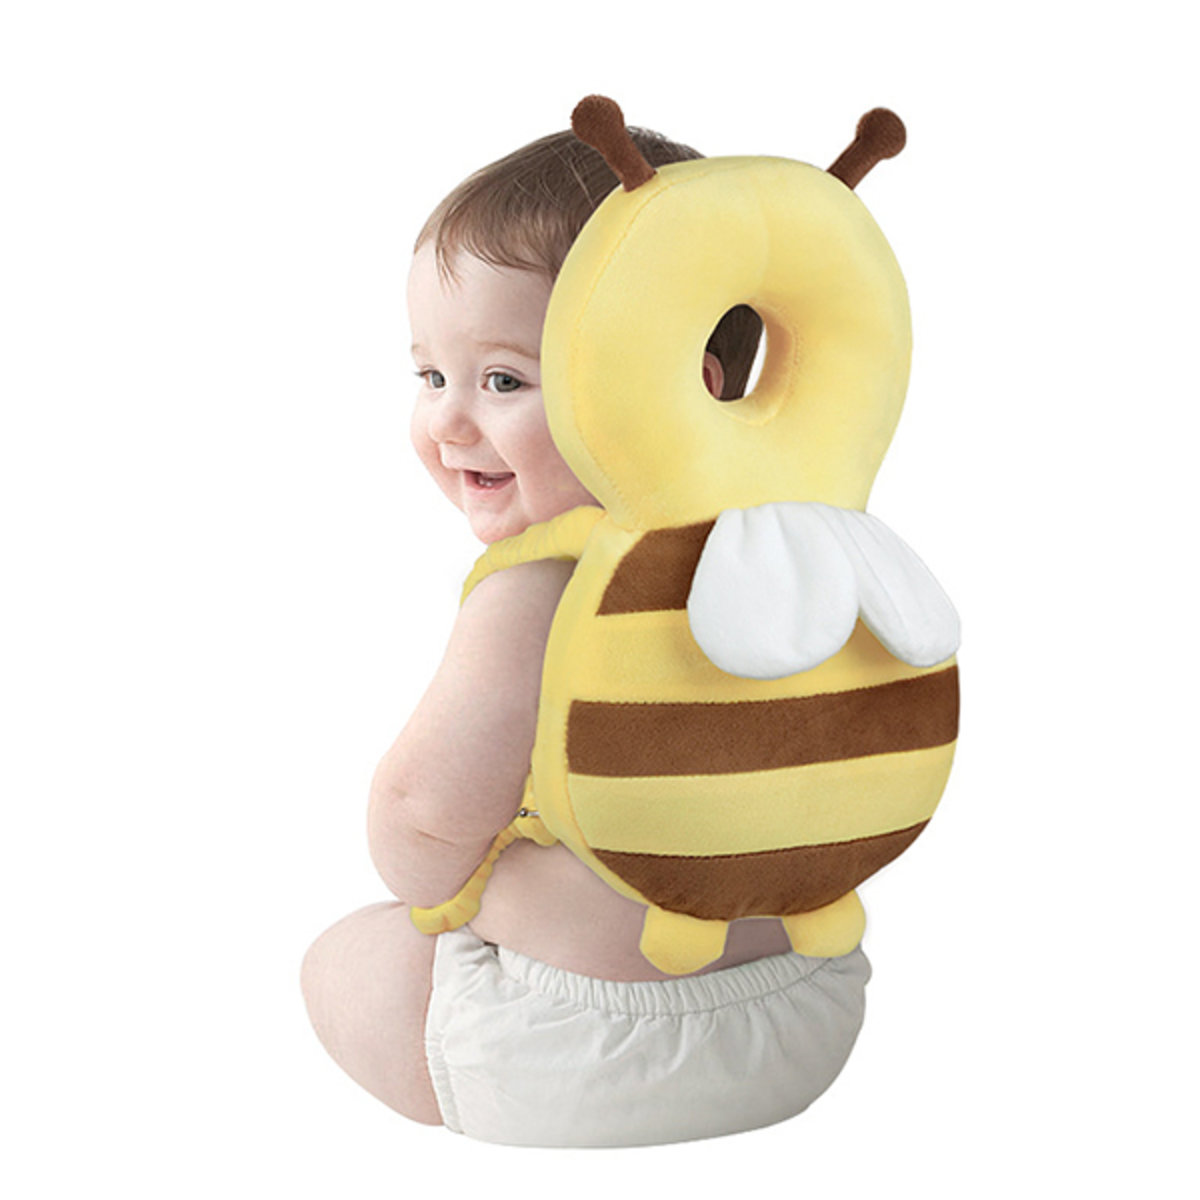 Baby toddler headrest with built-in pinch stereo breathable version